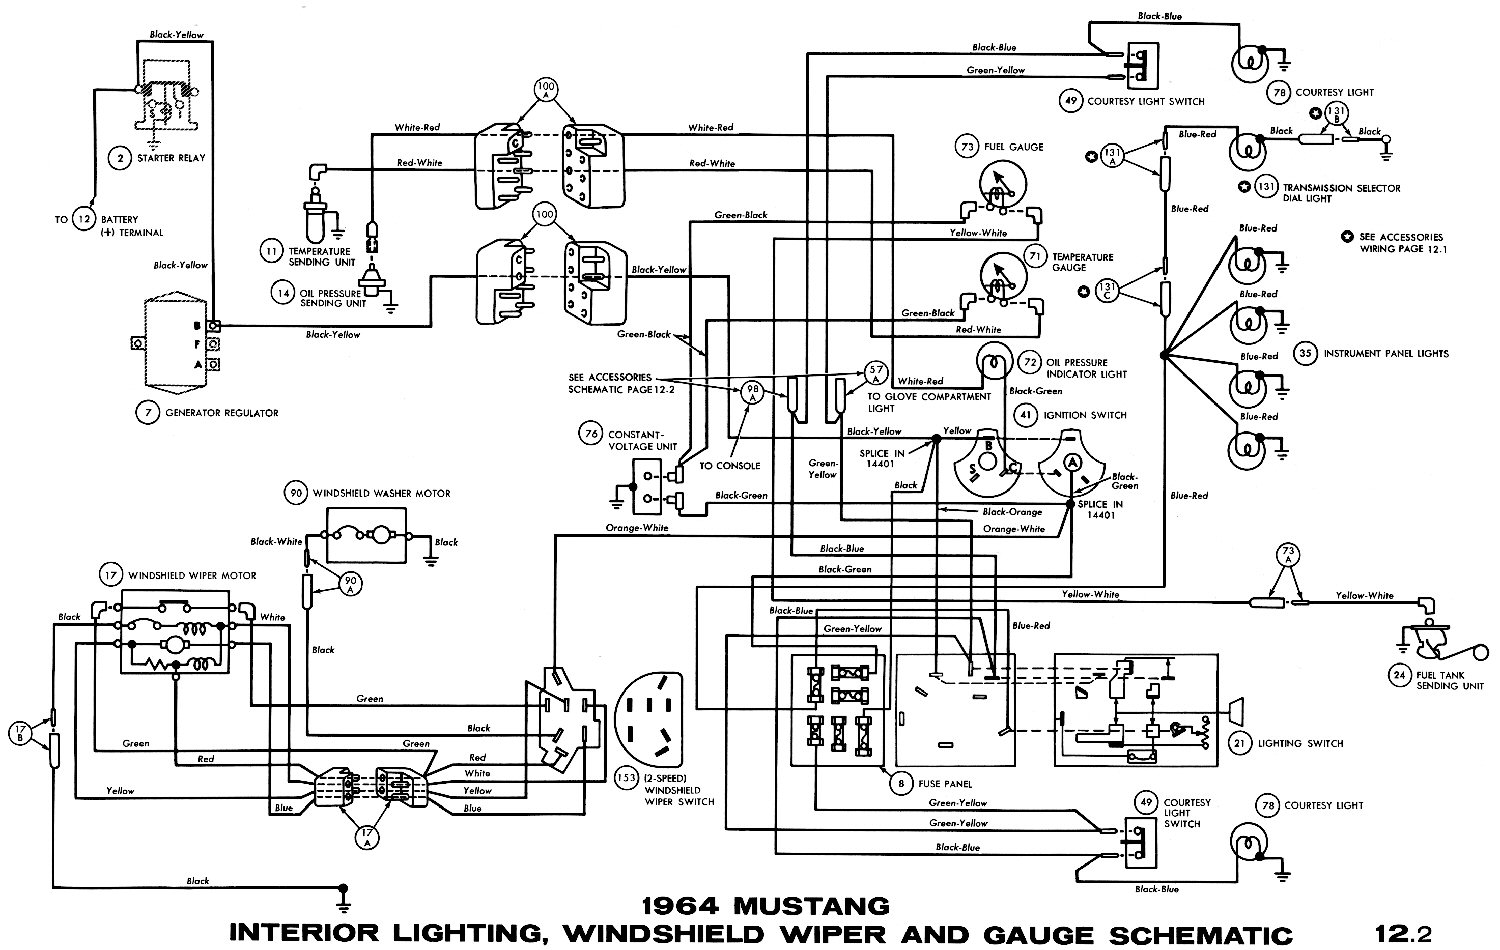 1964 mustang wiring diagrams average joe restoration rh averagejoerestoration com 1965 Mustang Ignition Switch Wiring Diagram 1965 Mustang Color Wiring Diagram